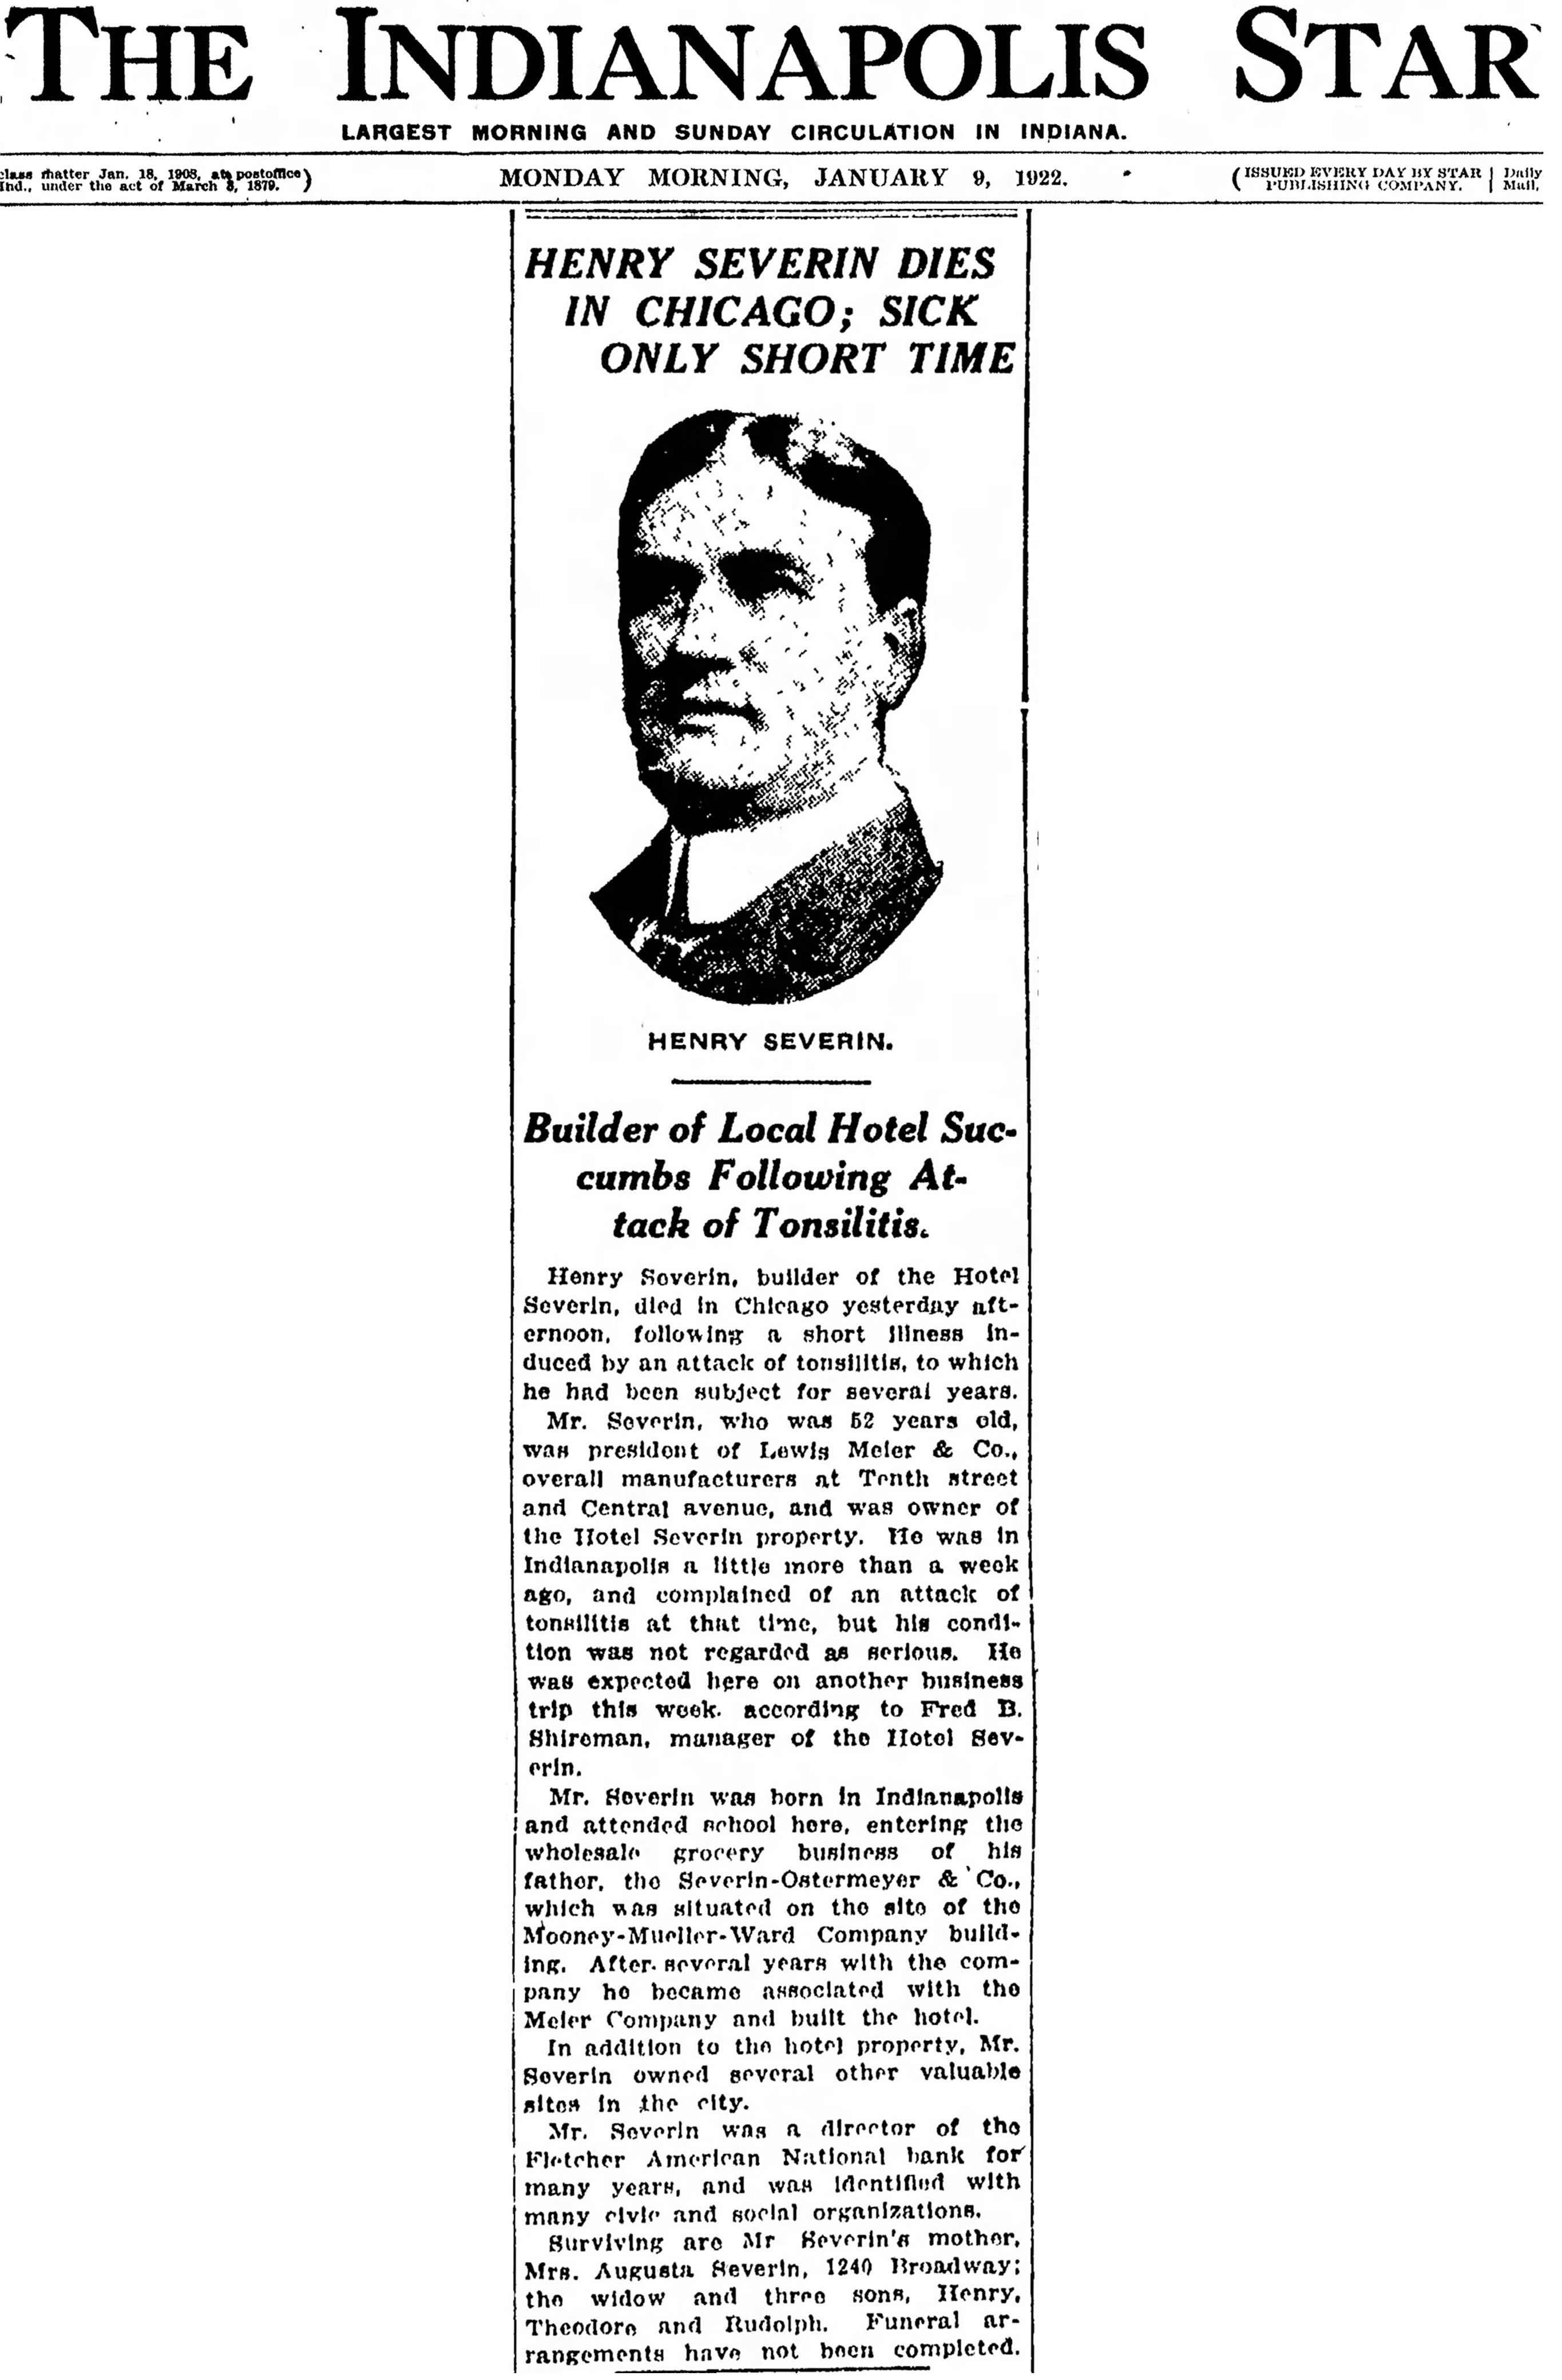 (1922 Indianapolis Star article courtesy of newspapers.com)